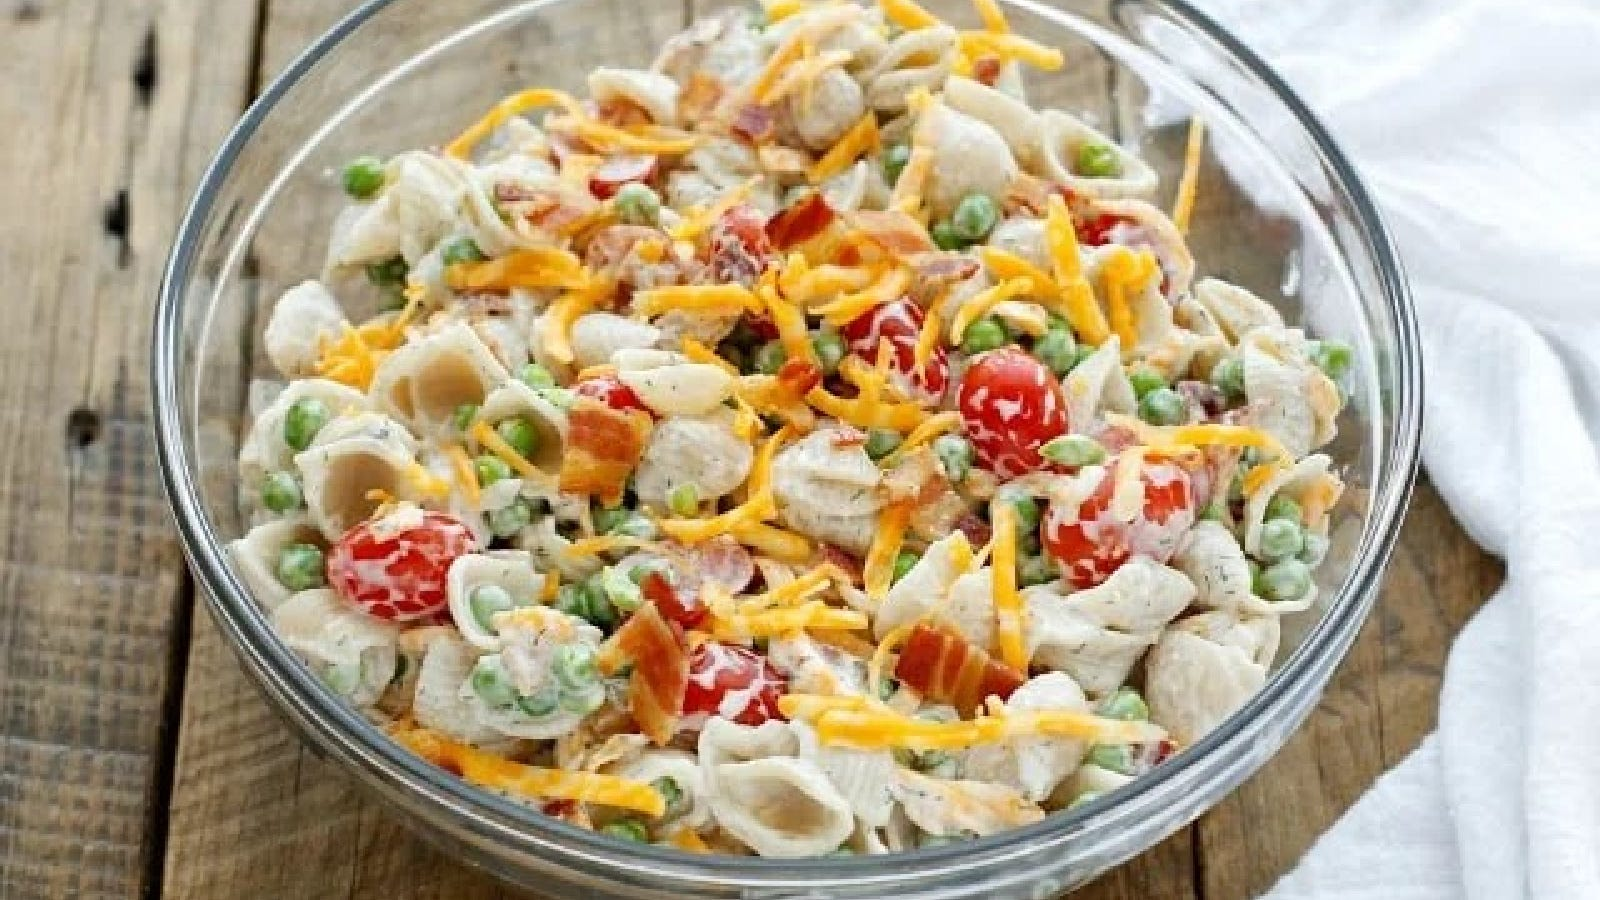 A large glass bowl filled with bacon ranch pasta salad.